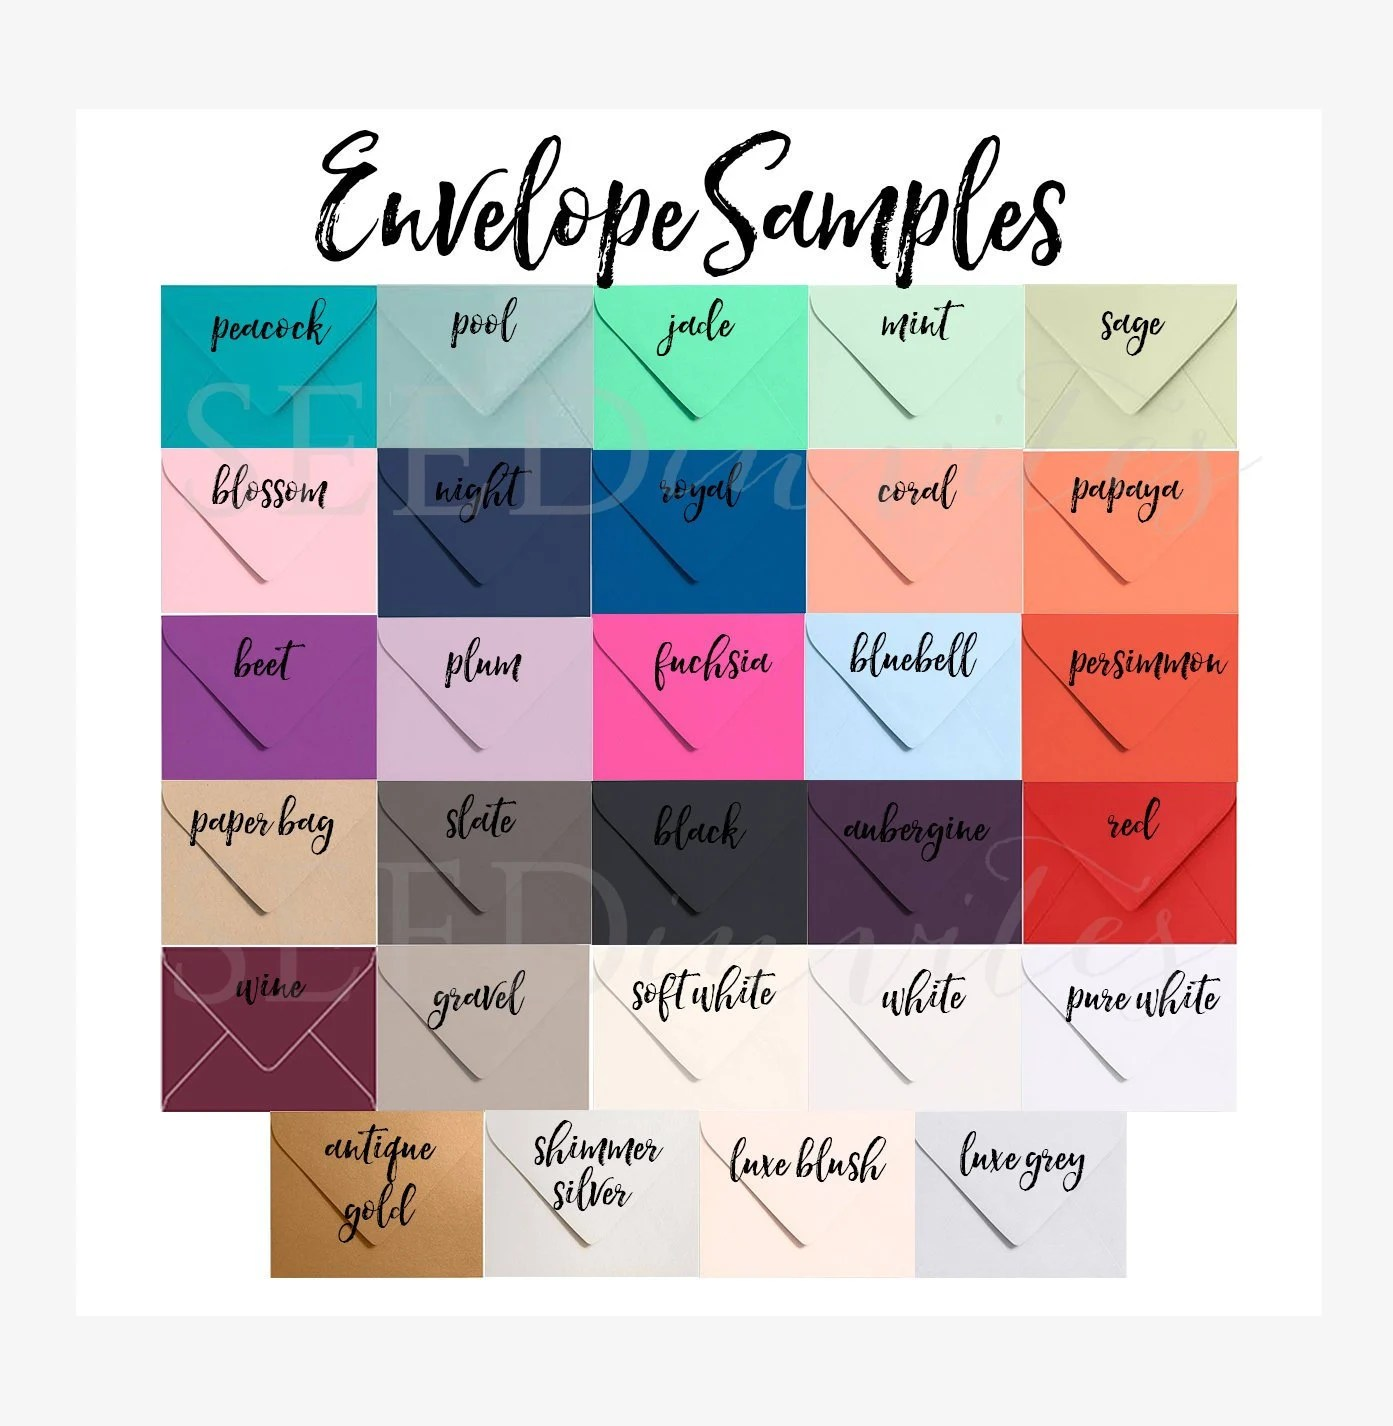 A7 5x7 Envelopes SAMPLE 80 Premium Paper Source Euro Etsy - sample 5x7 envelope template